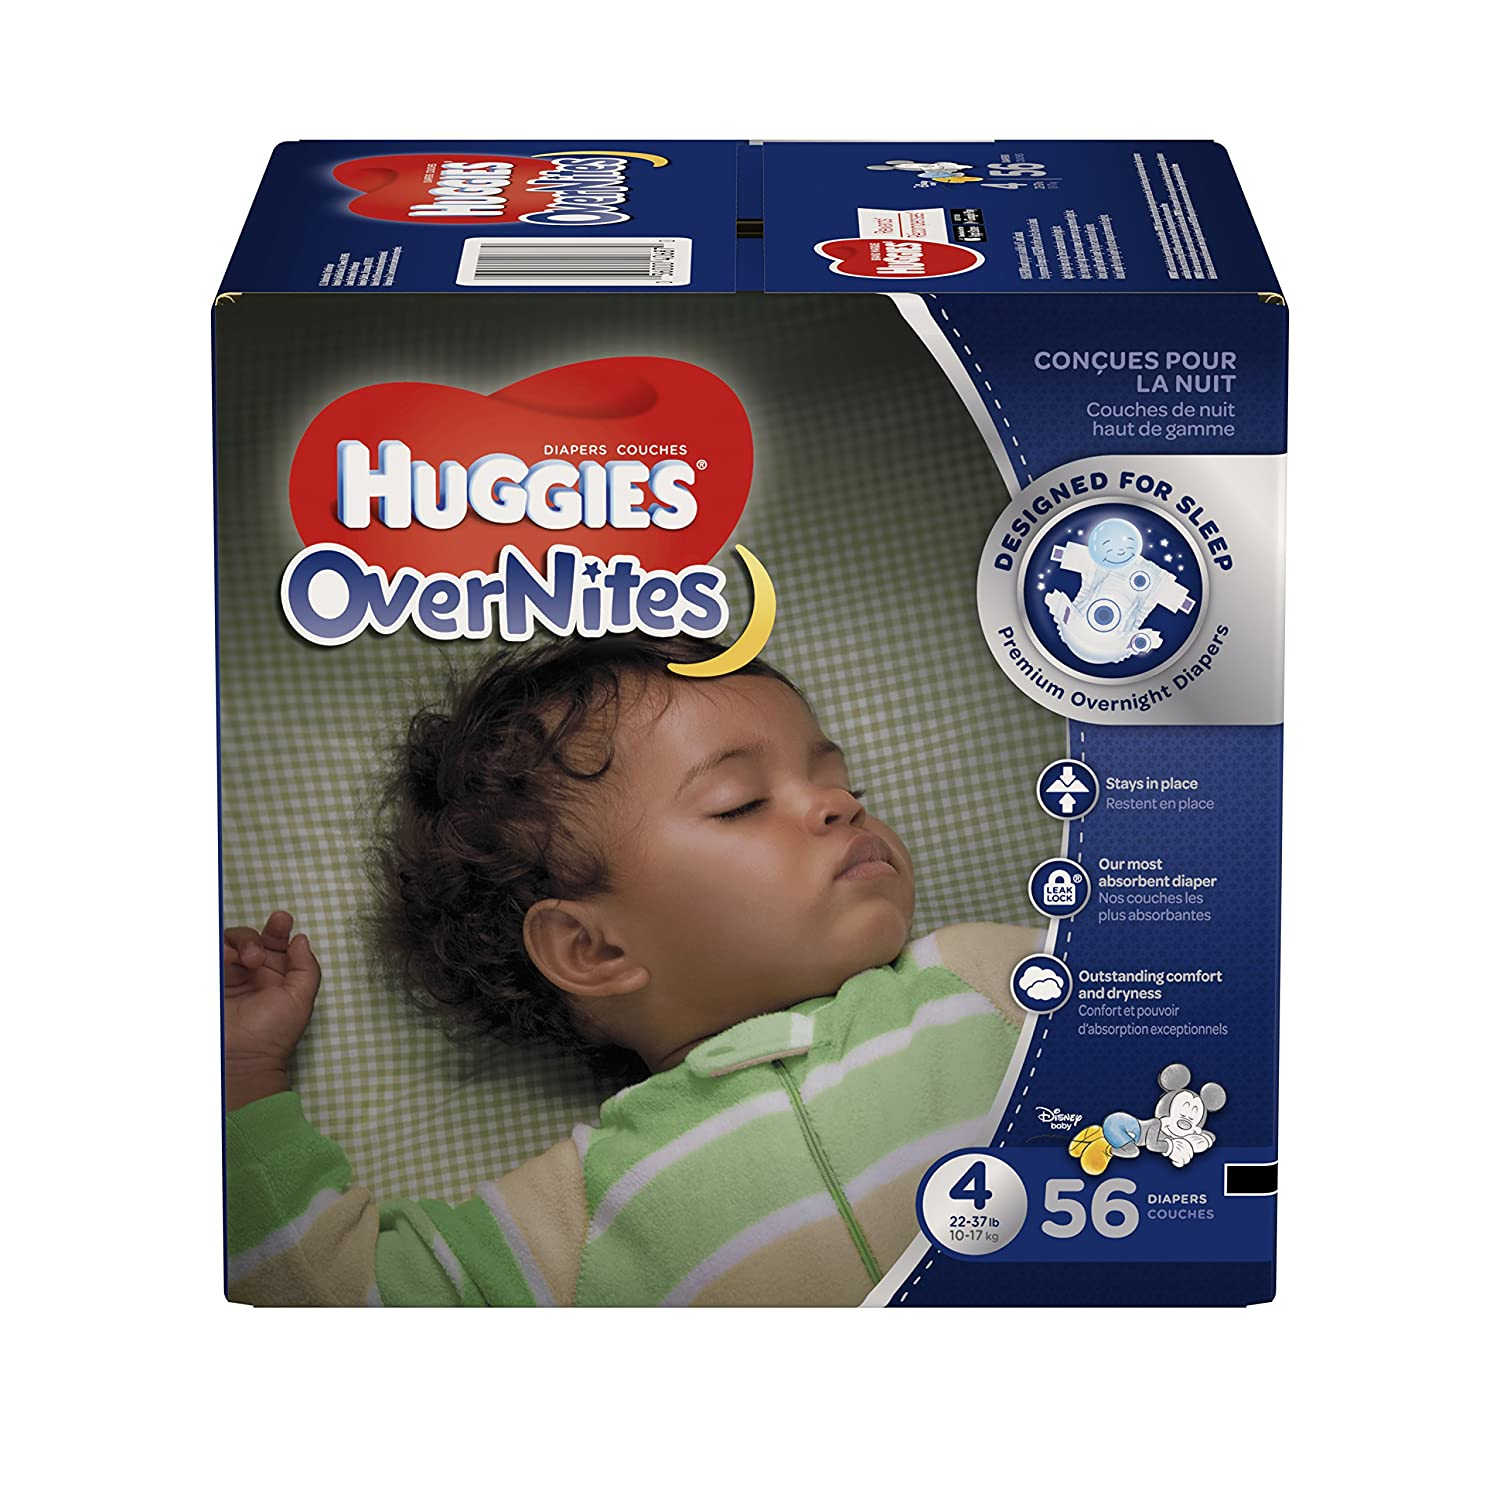 Top 12 Best Overnight Diapers & Reusable Overnight Diapers Reviews in 2021 11